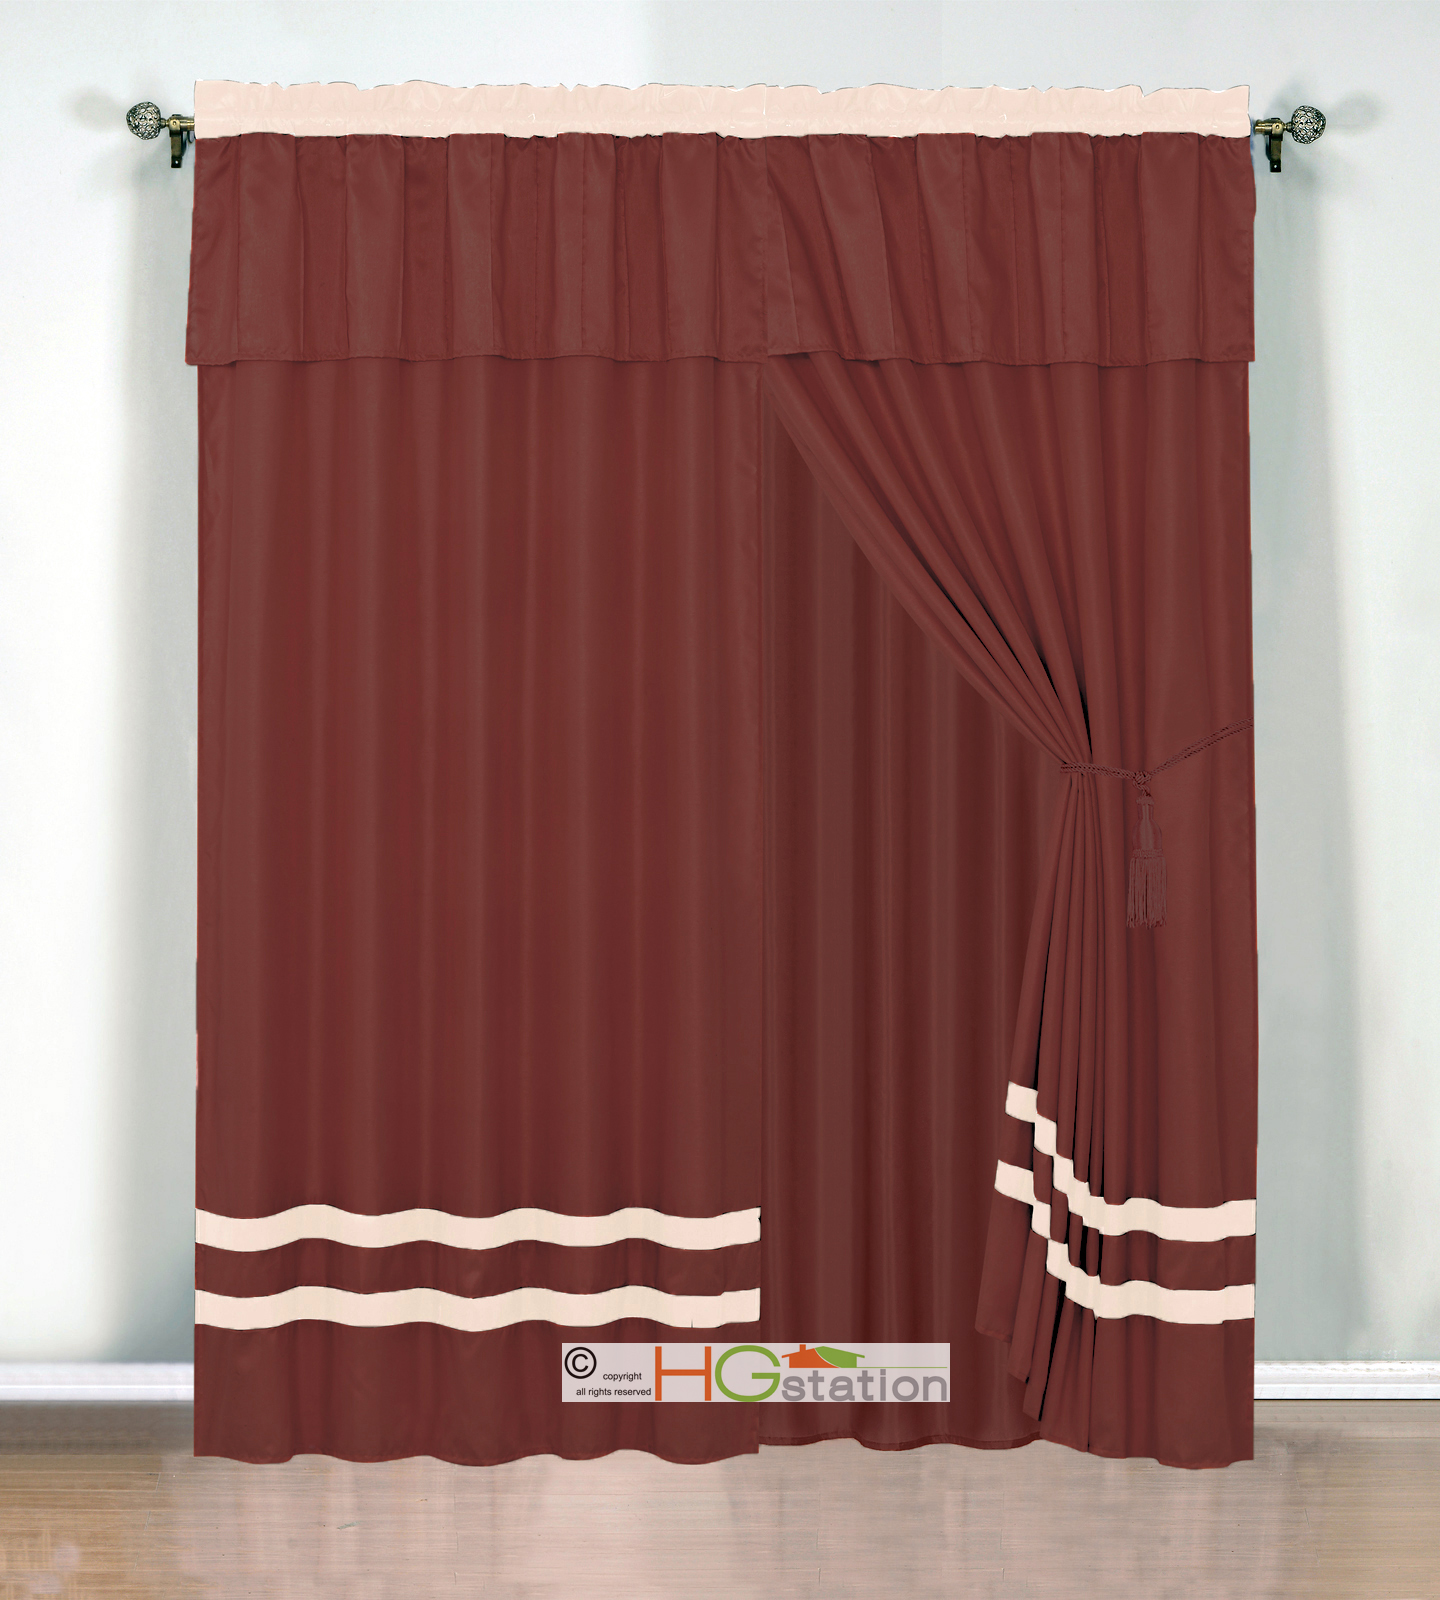 11 chic sleek pleated comforter curtain set leaves rust. Black Bedroom Furniture Sets. Home Design Ideas